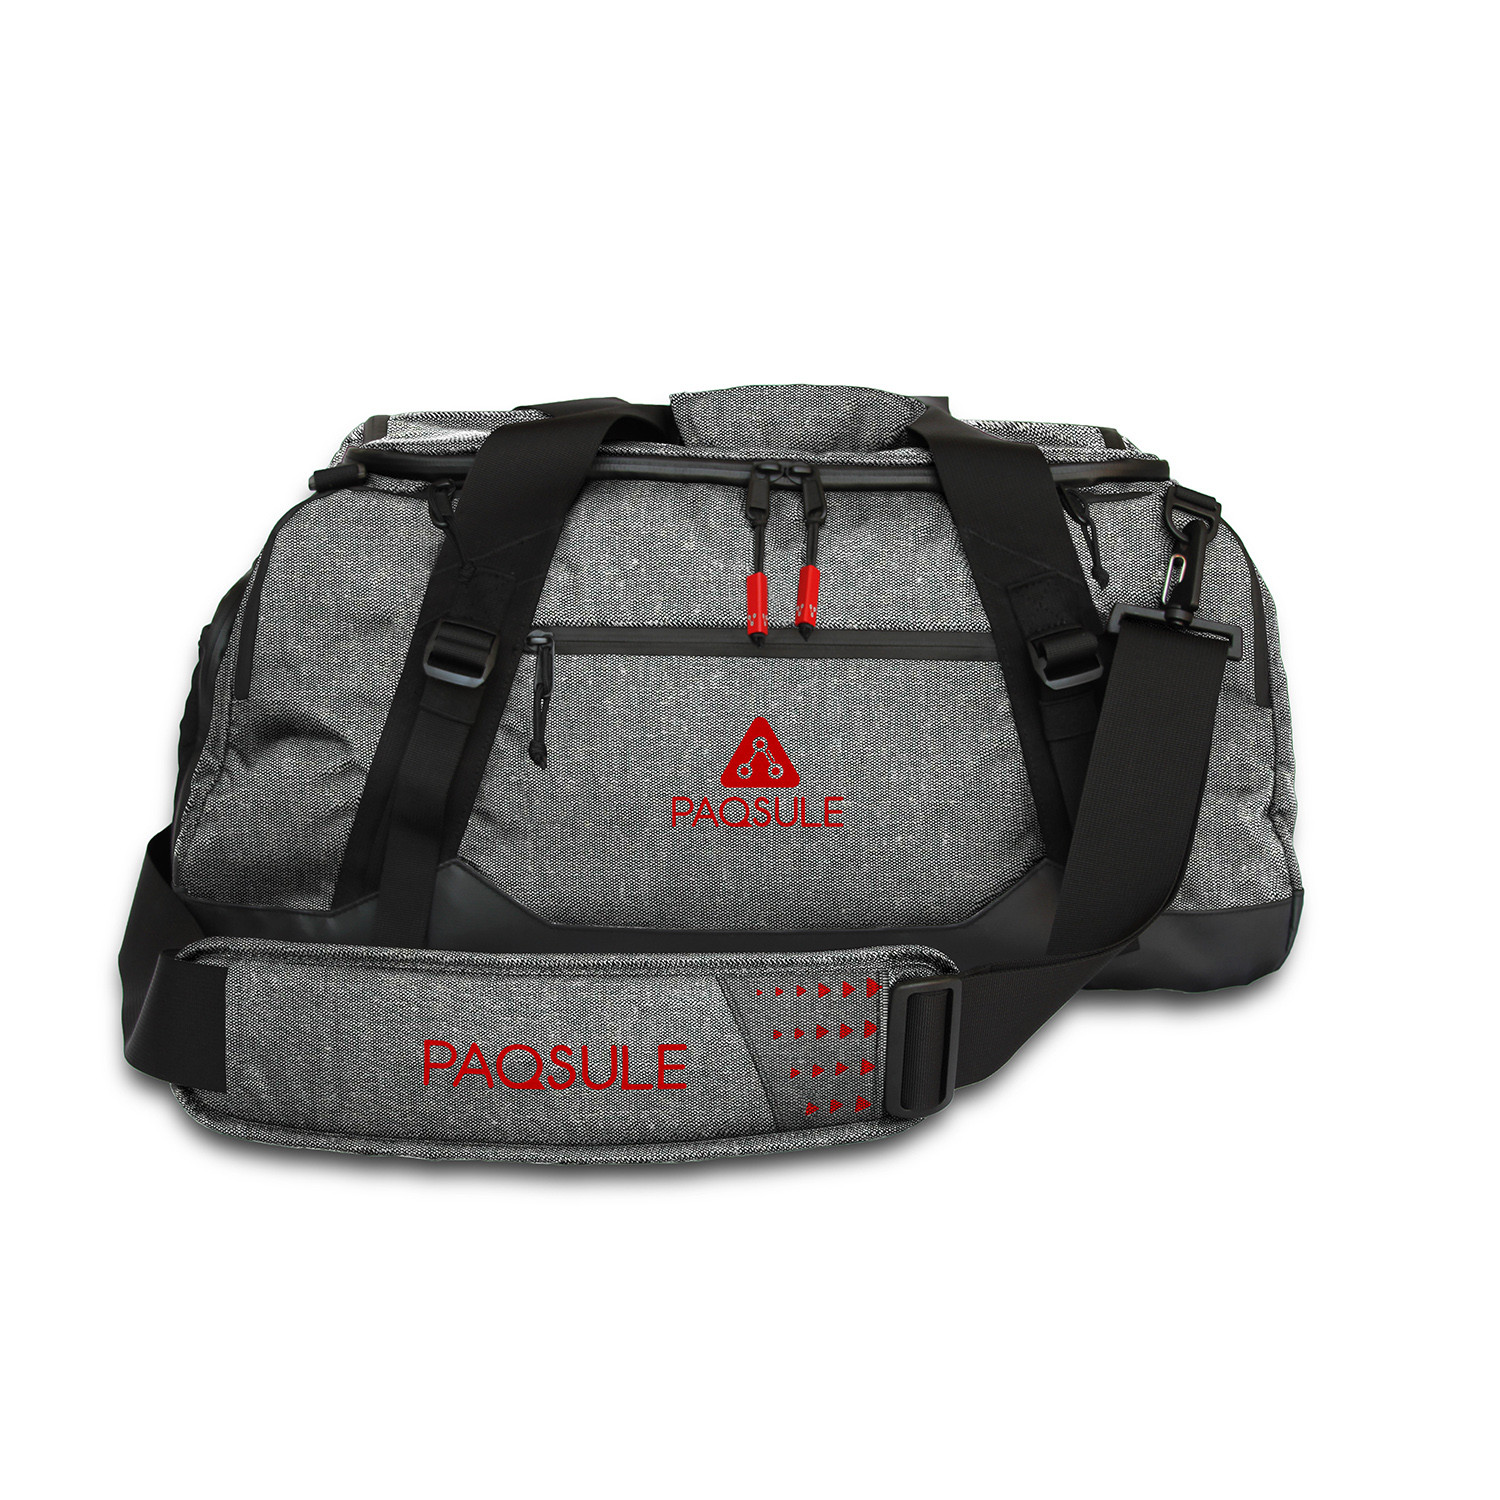 46b19213a370 PaqSule Self-Sanitizing Gym Bag    Gray - PaqSule - Touch of Modern